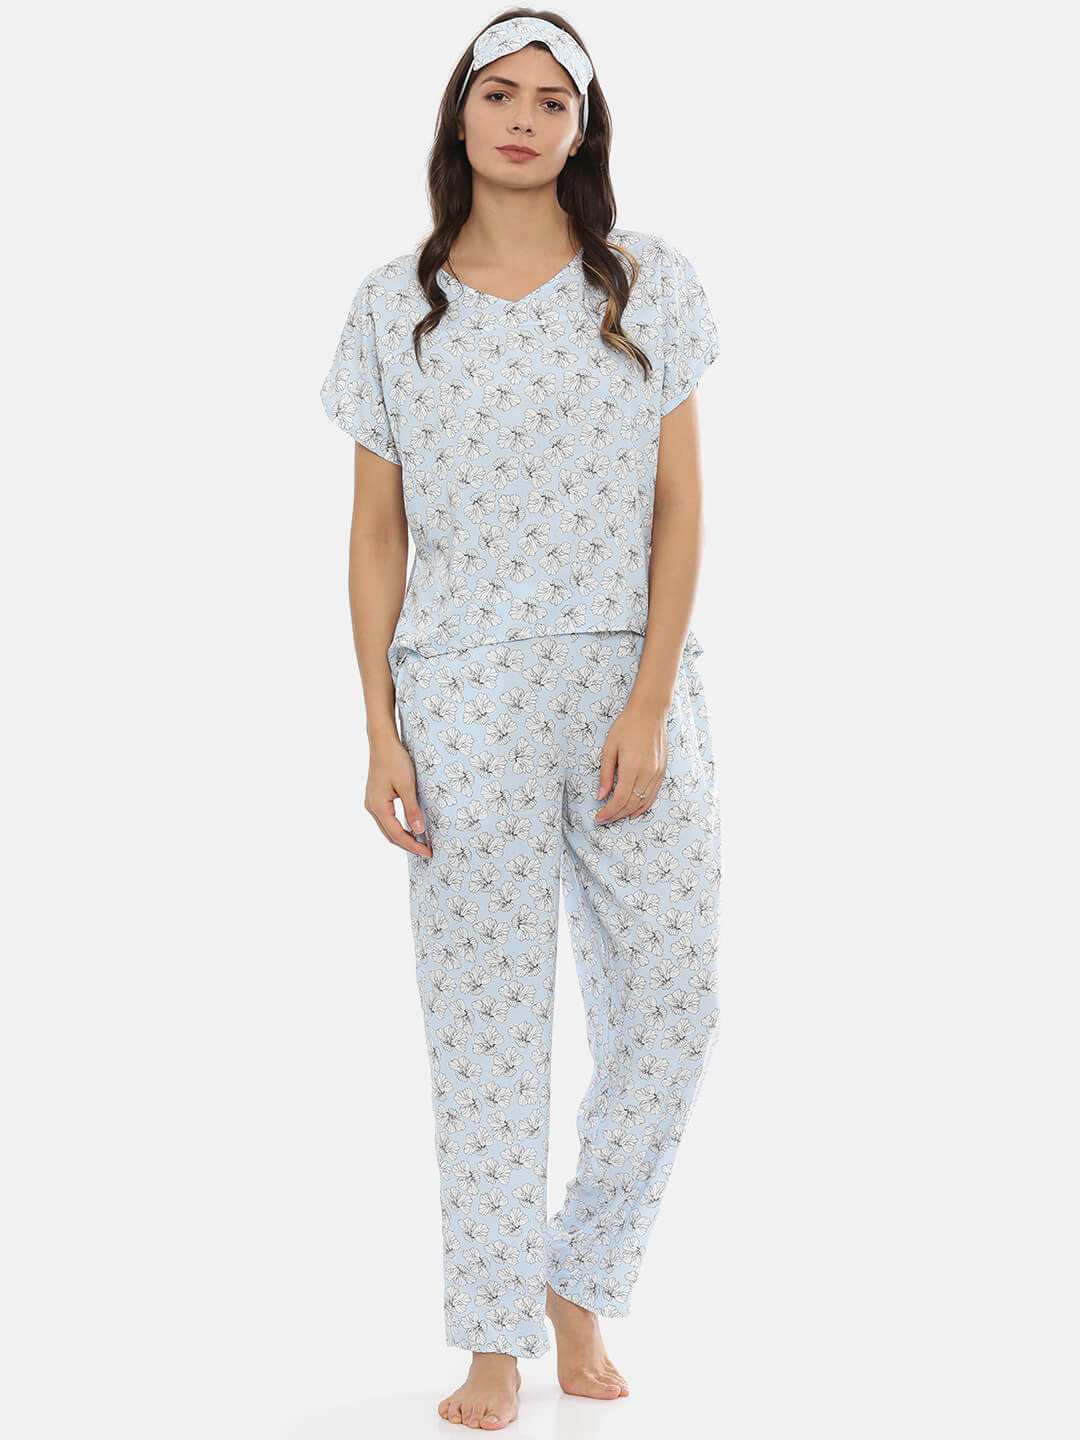 3 Piece Printed Sleepwear